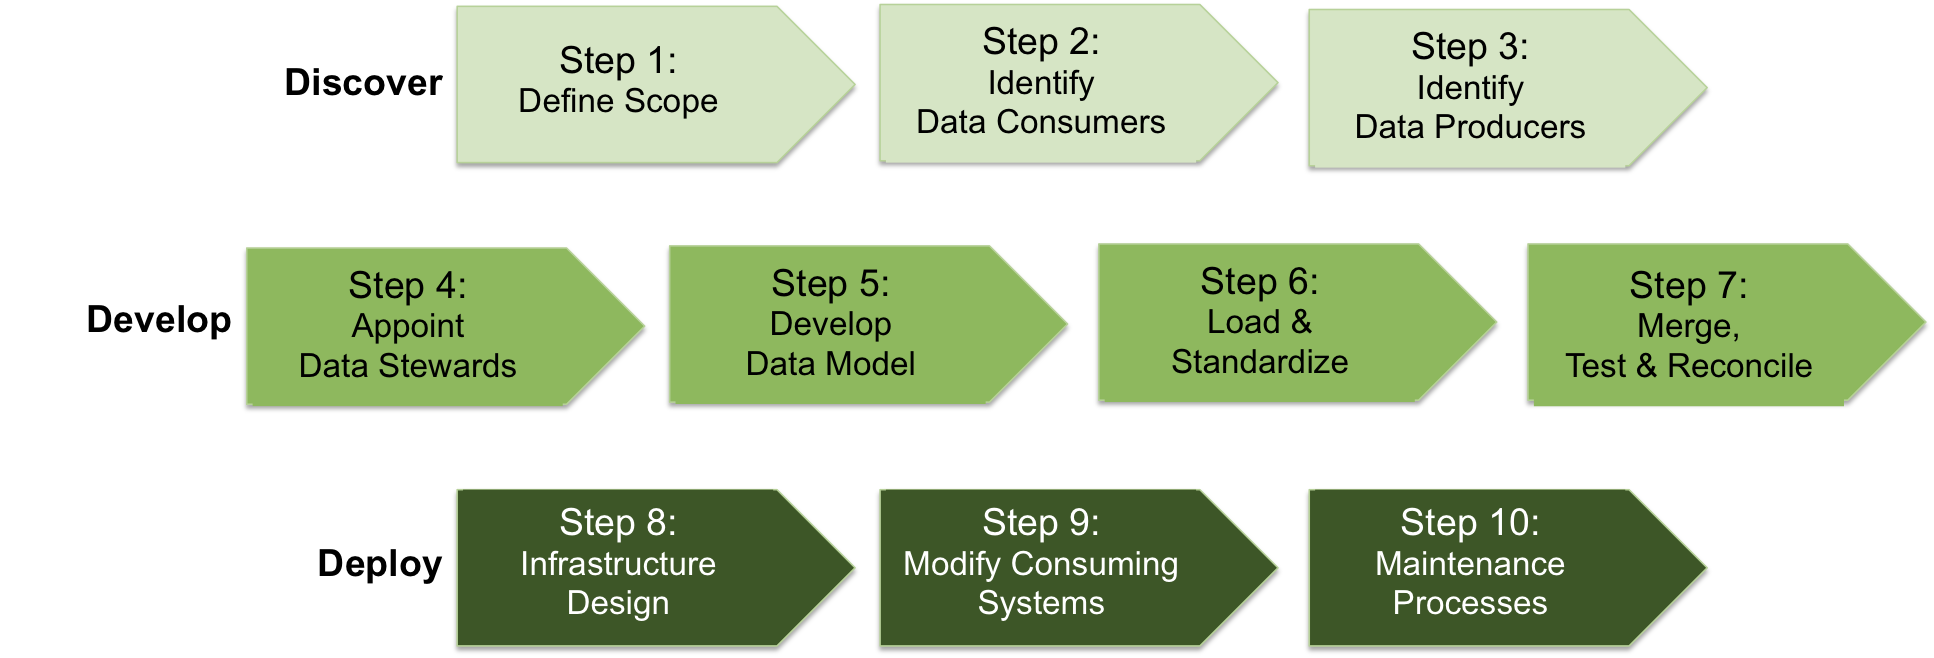 Single View Methodology